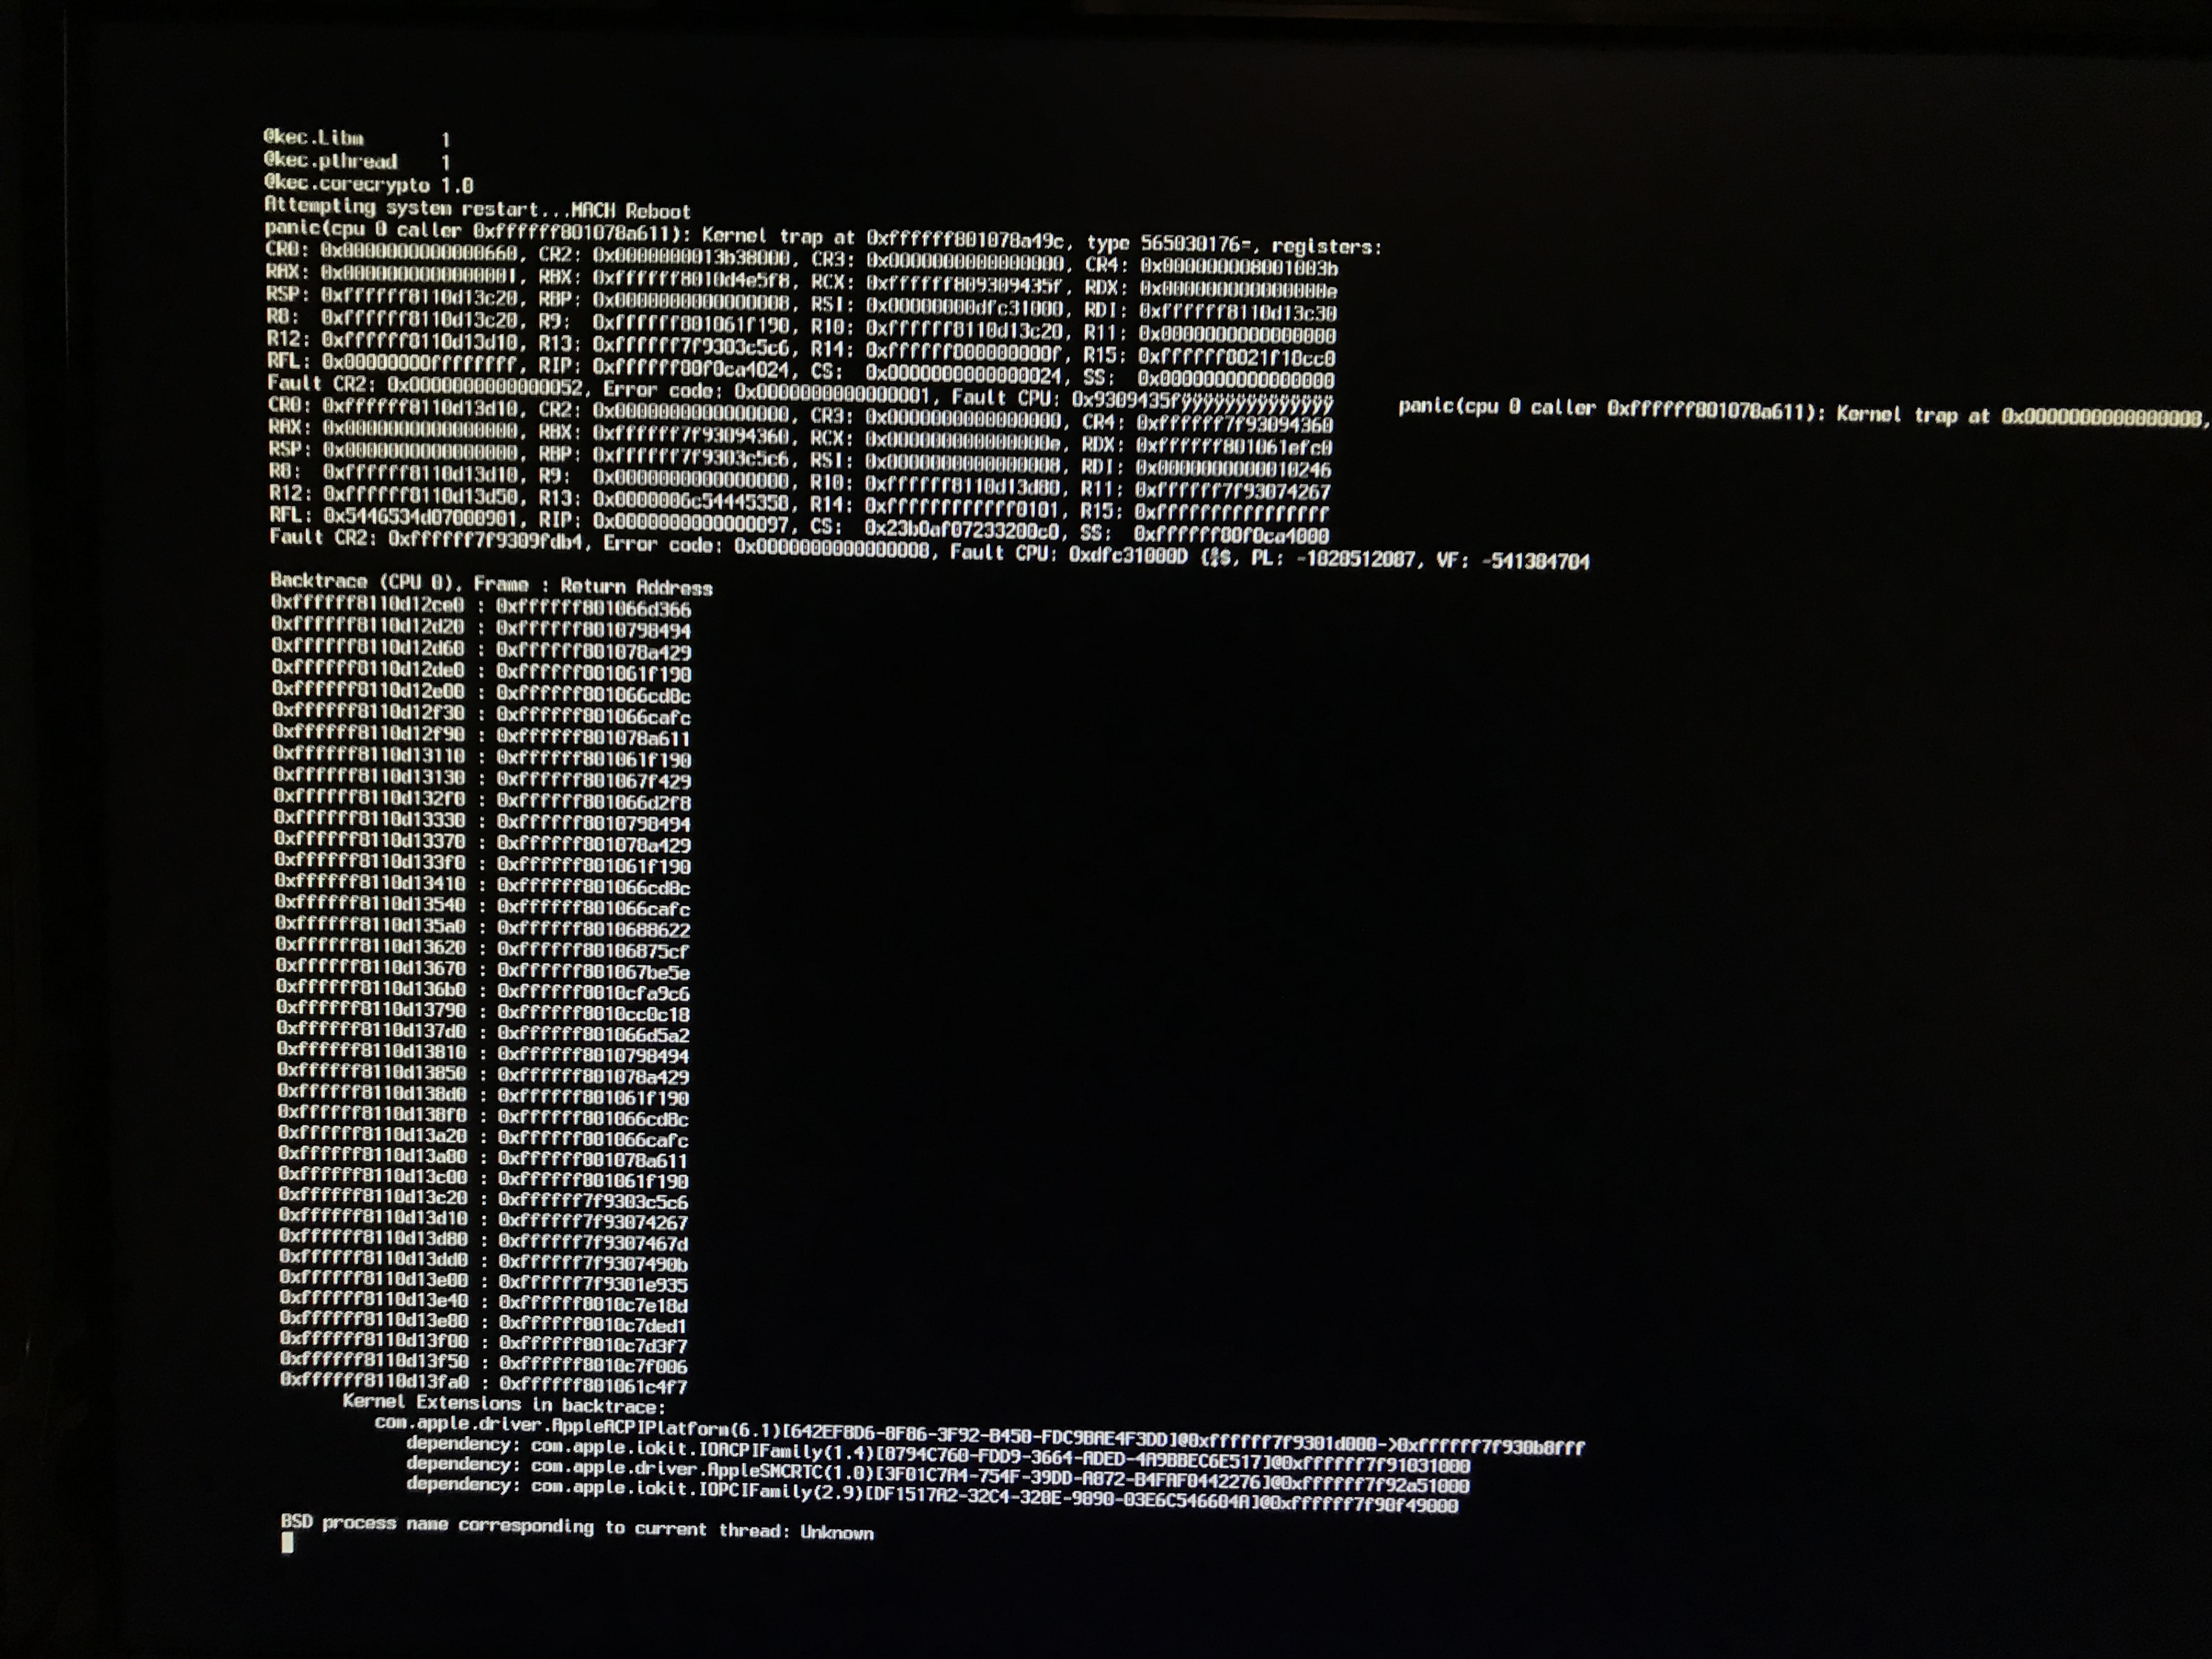 High Sierra installer boot hang: Unsupported cpu for